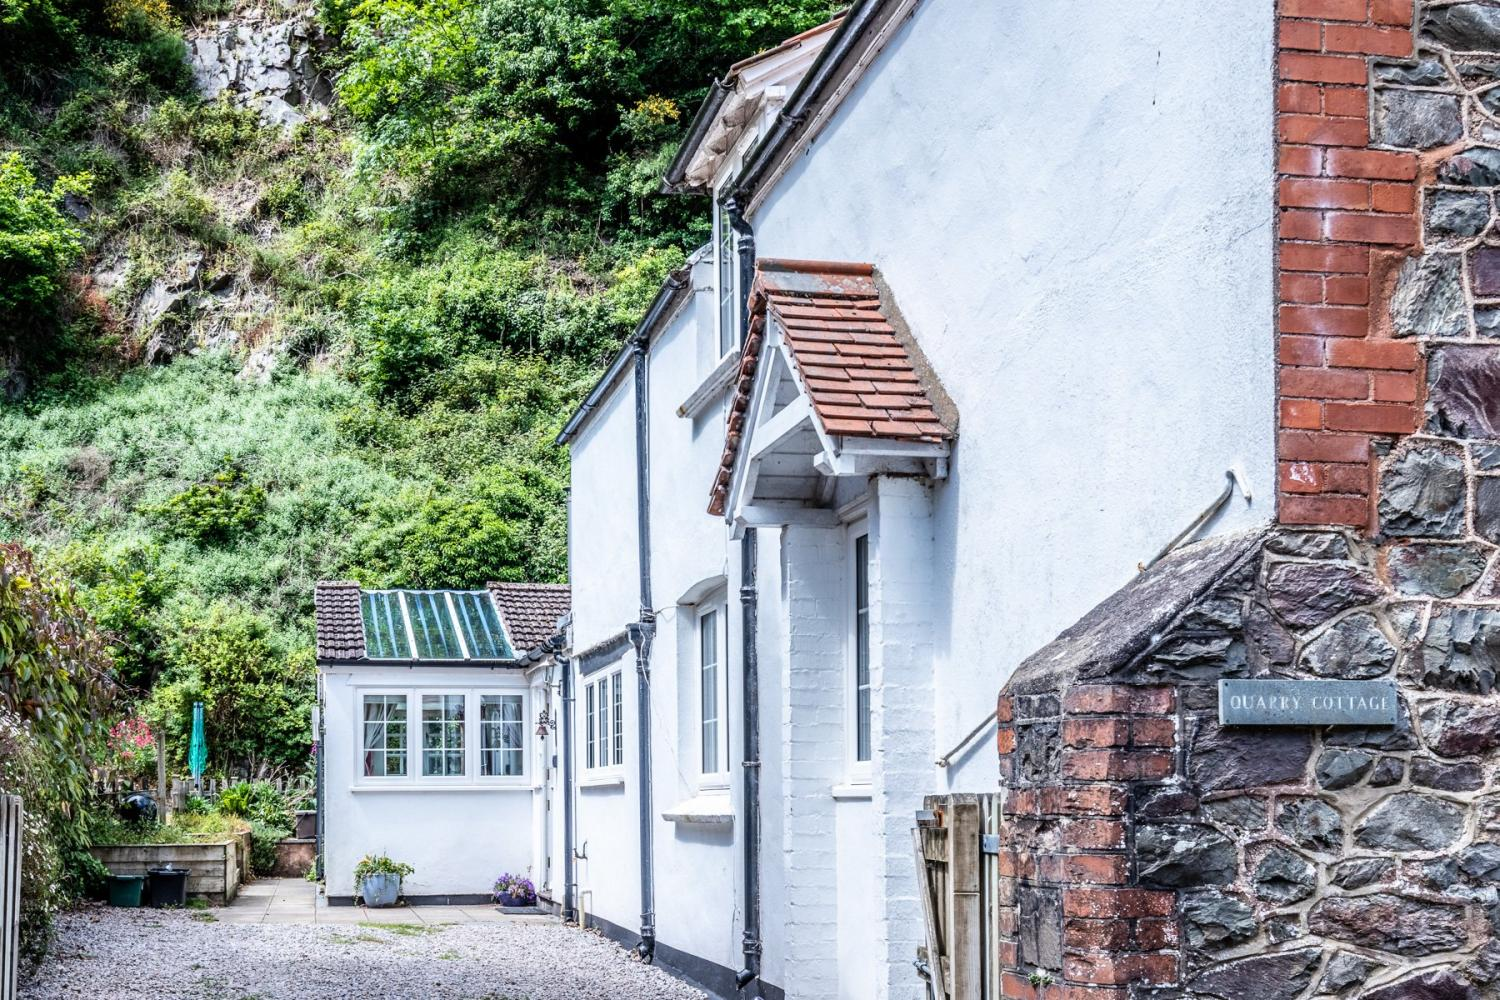 Quarry Cottage exterior